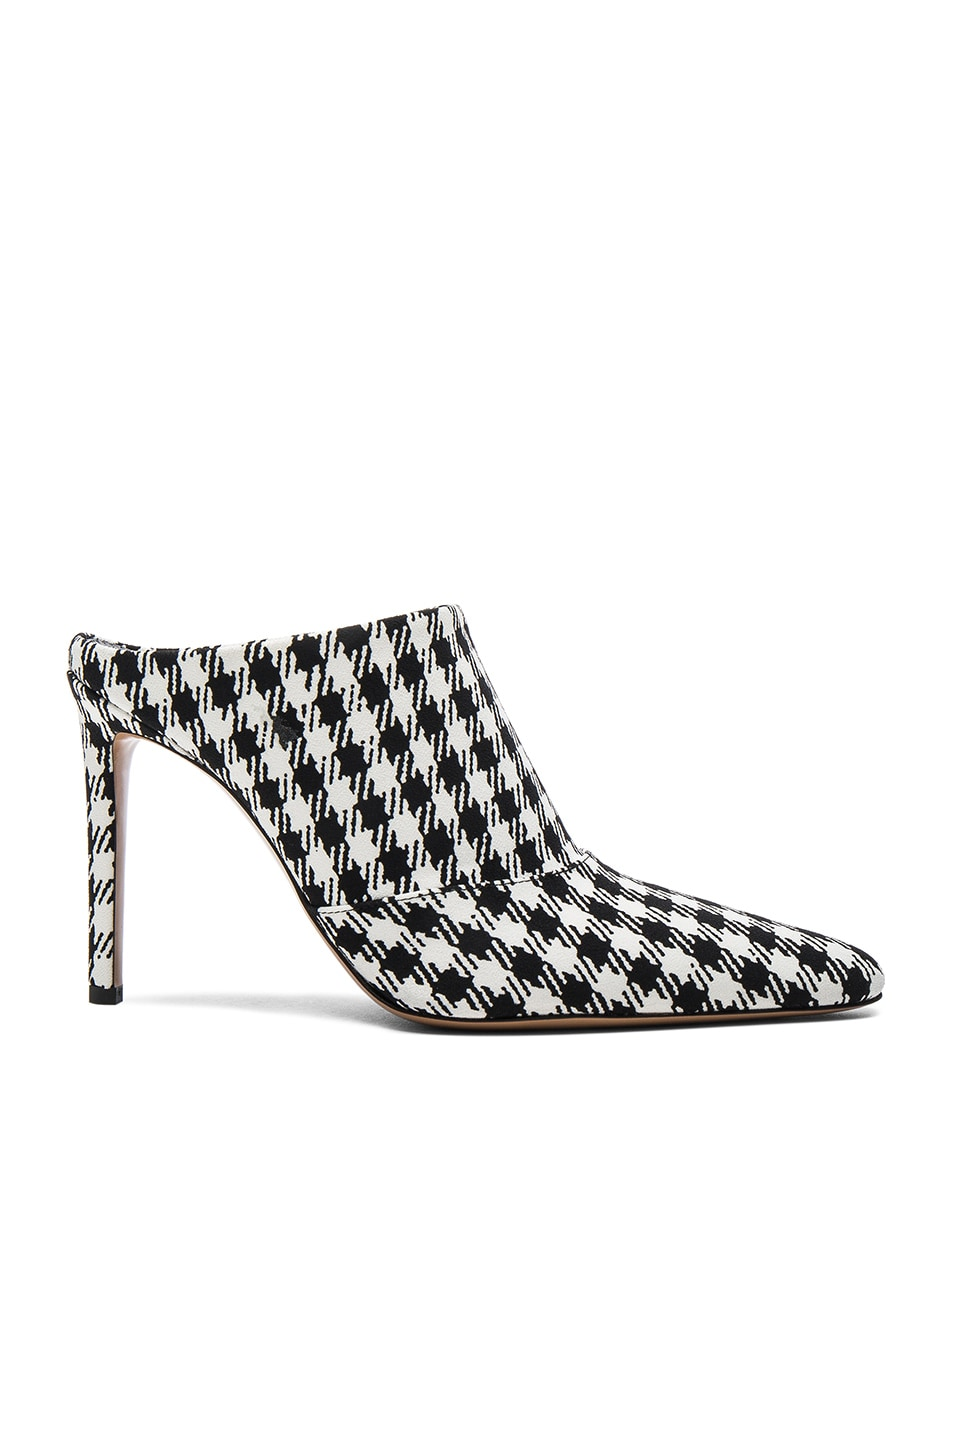 Image 1 of Altuzarra Canvas Davidson Mules in Black & White